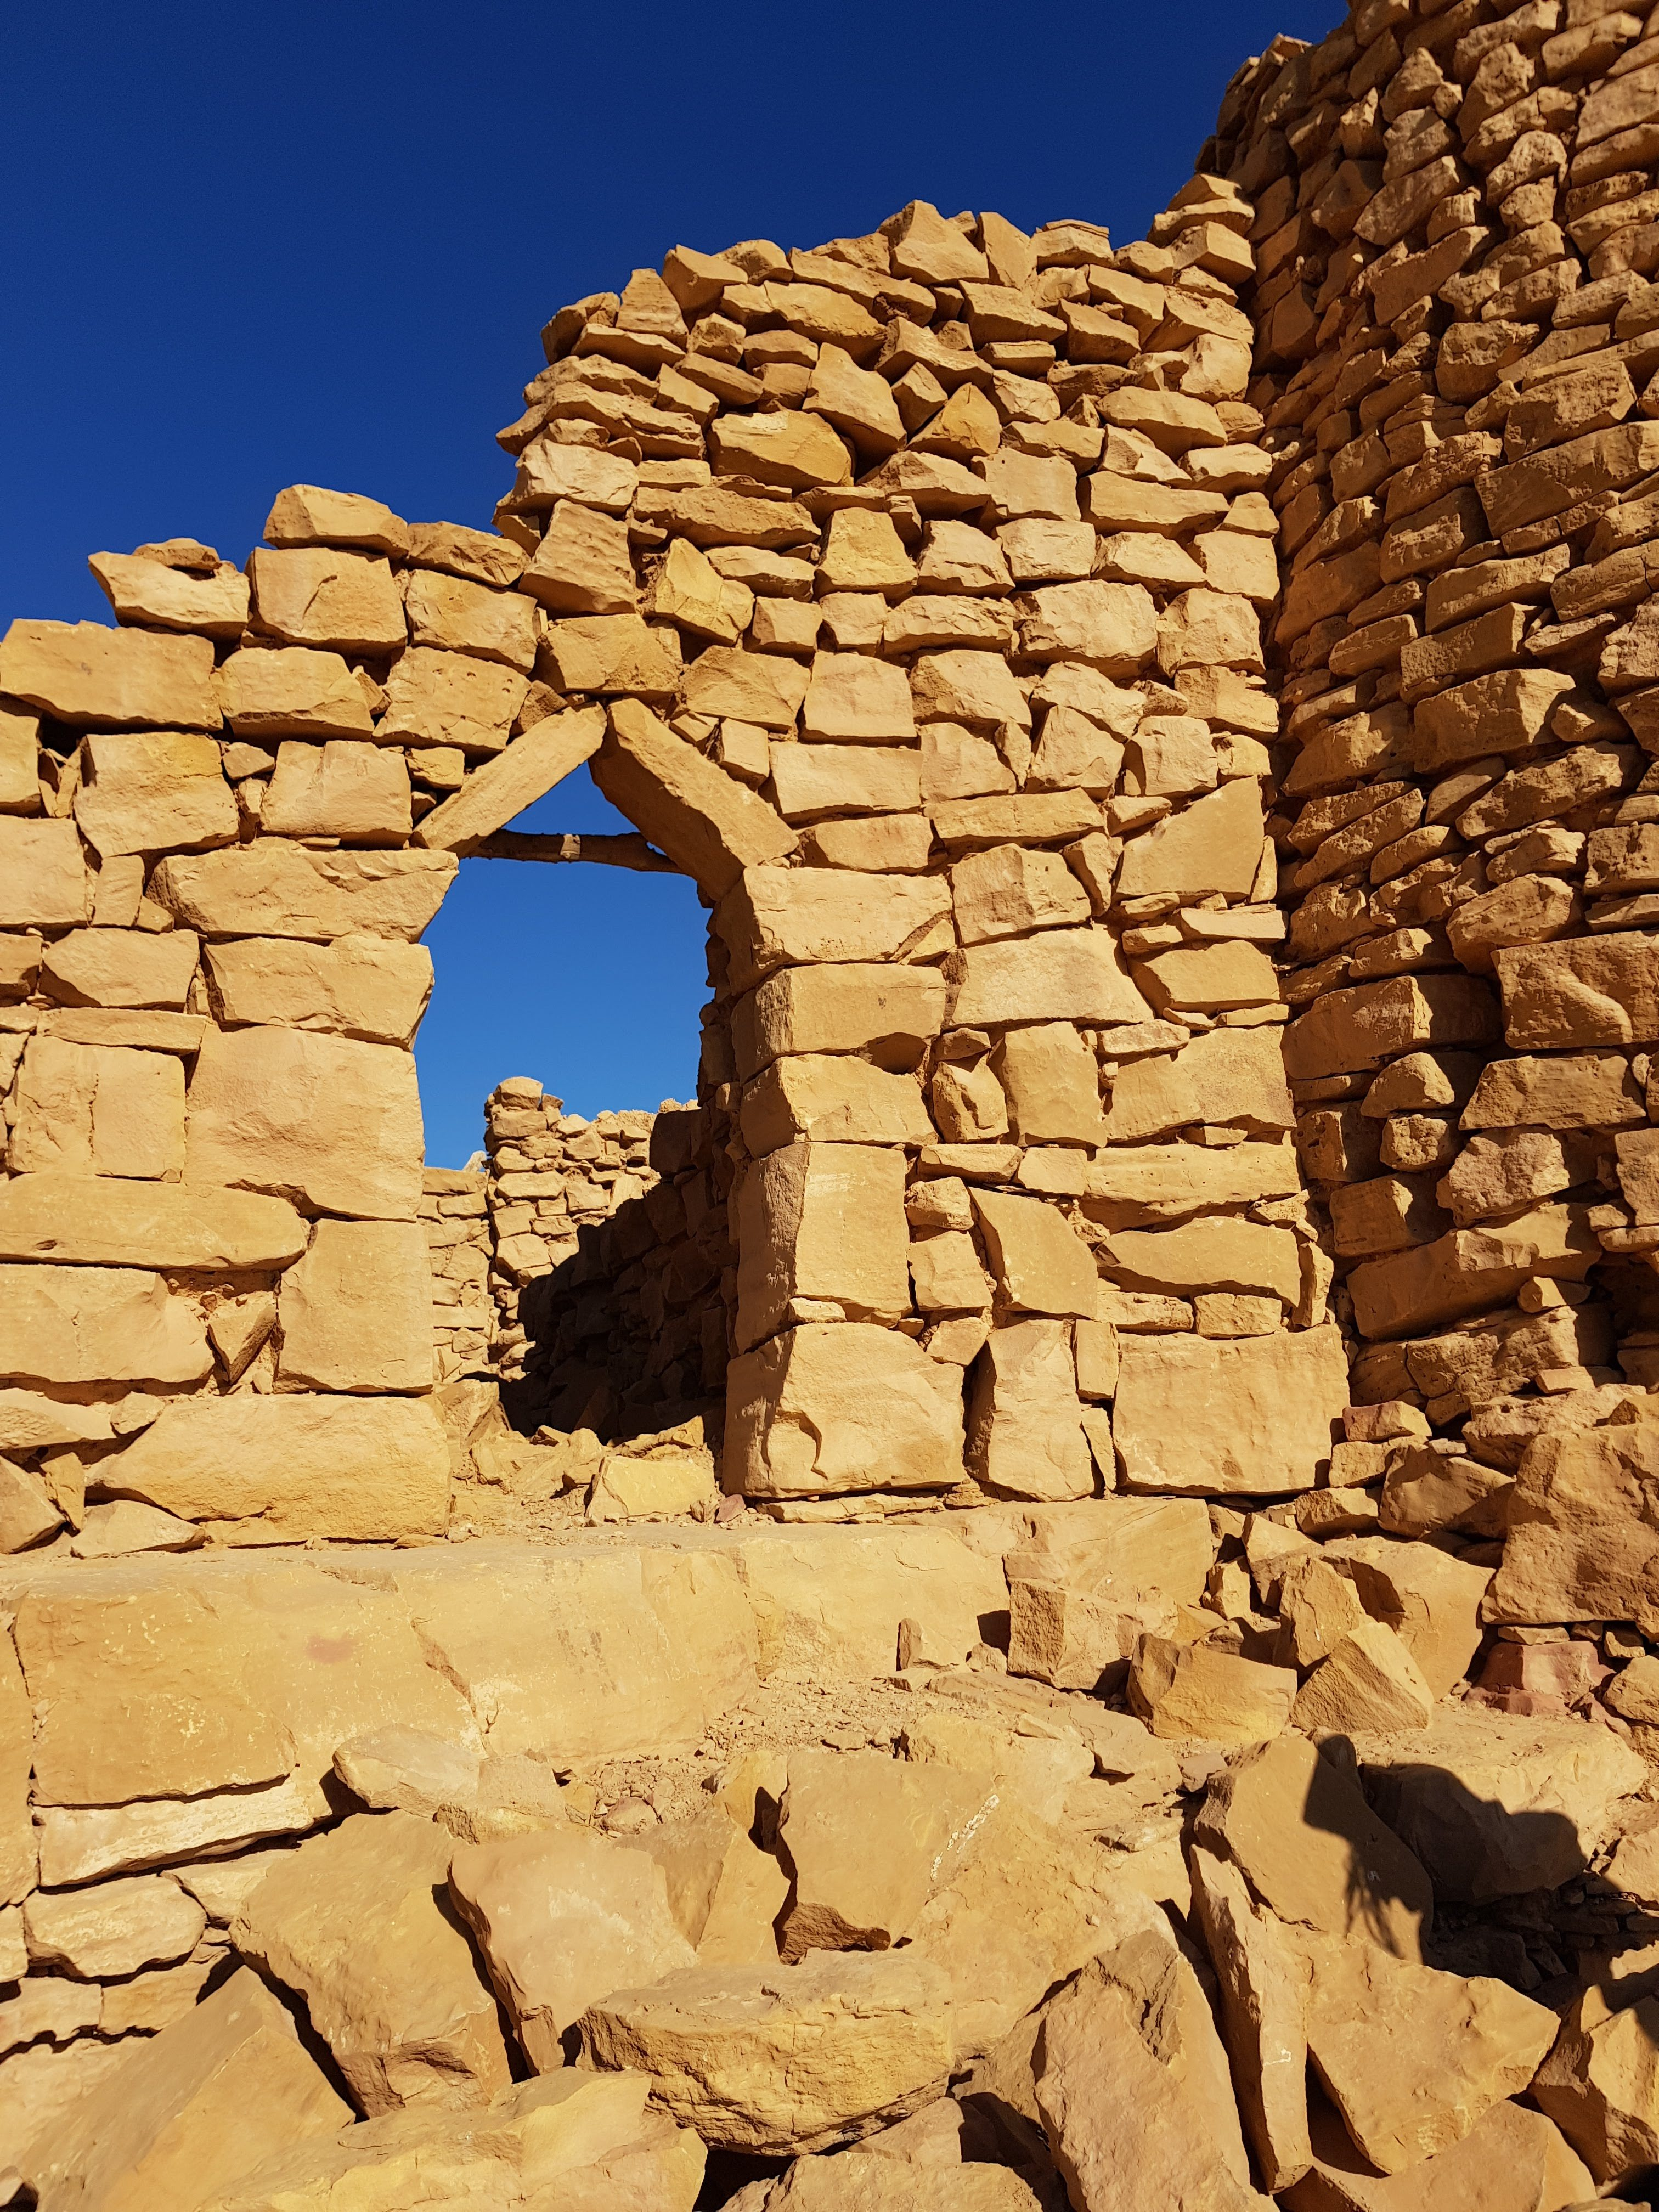 The entry archway to Al Barrah Fort